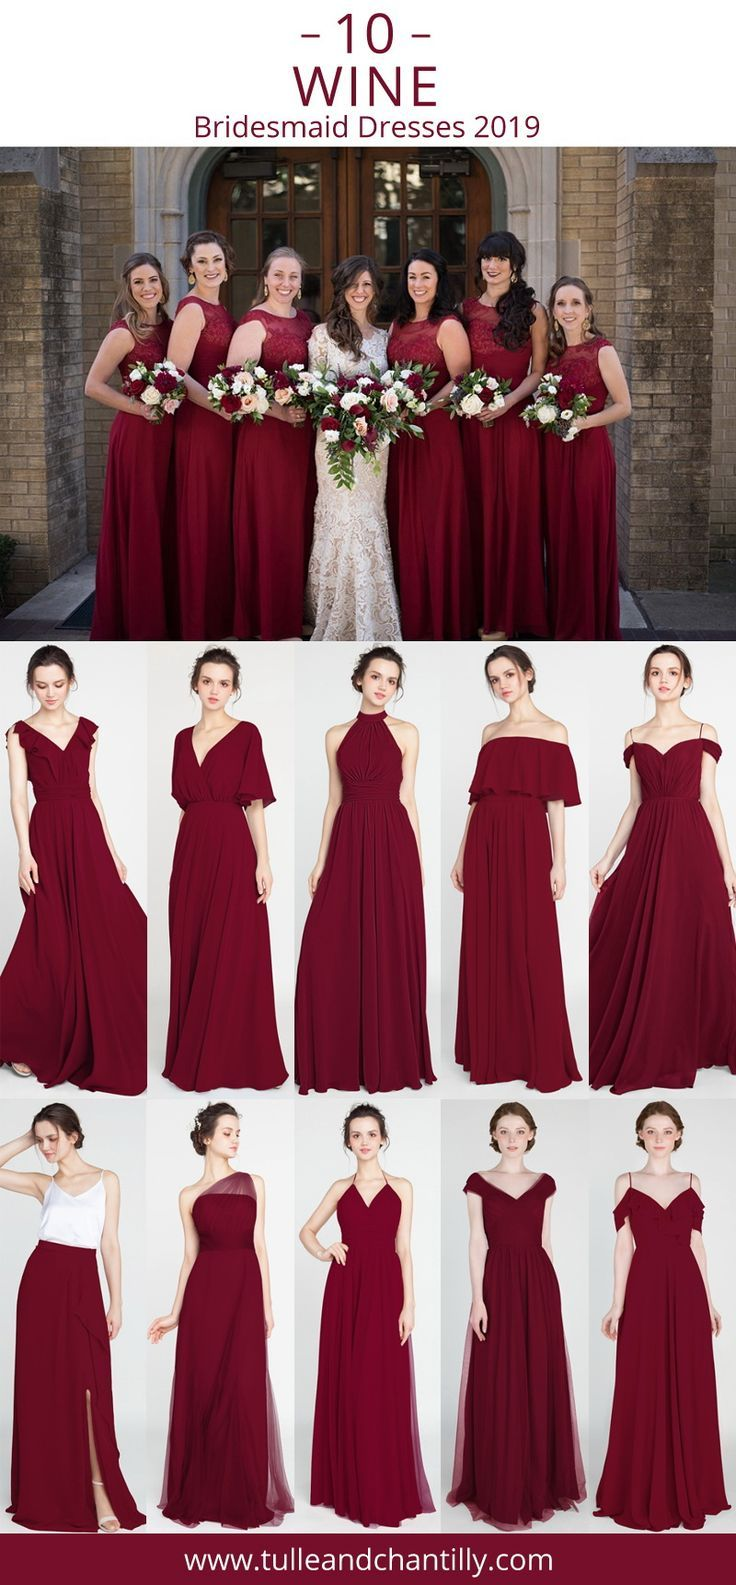 Long Short Bridesmaid Dresses 79 149 Size 0 30 And 50 Colors Wine Bridesmaid Dresses Fall Bridesmaid Dresses Winter Bridesmaid Dresses